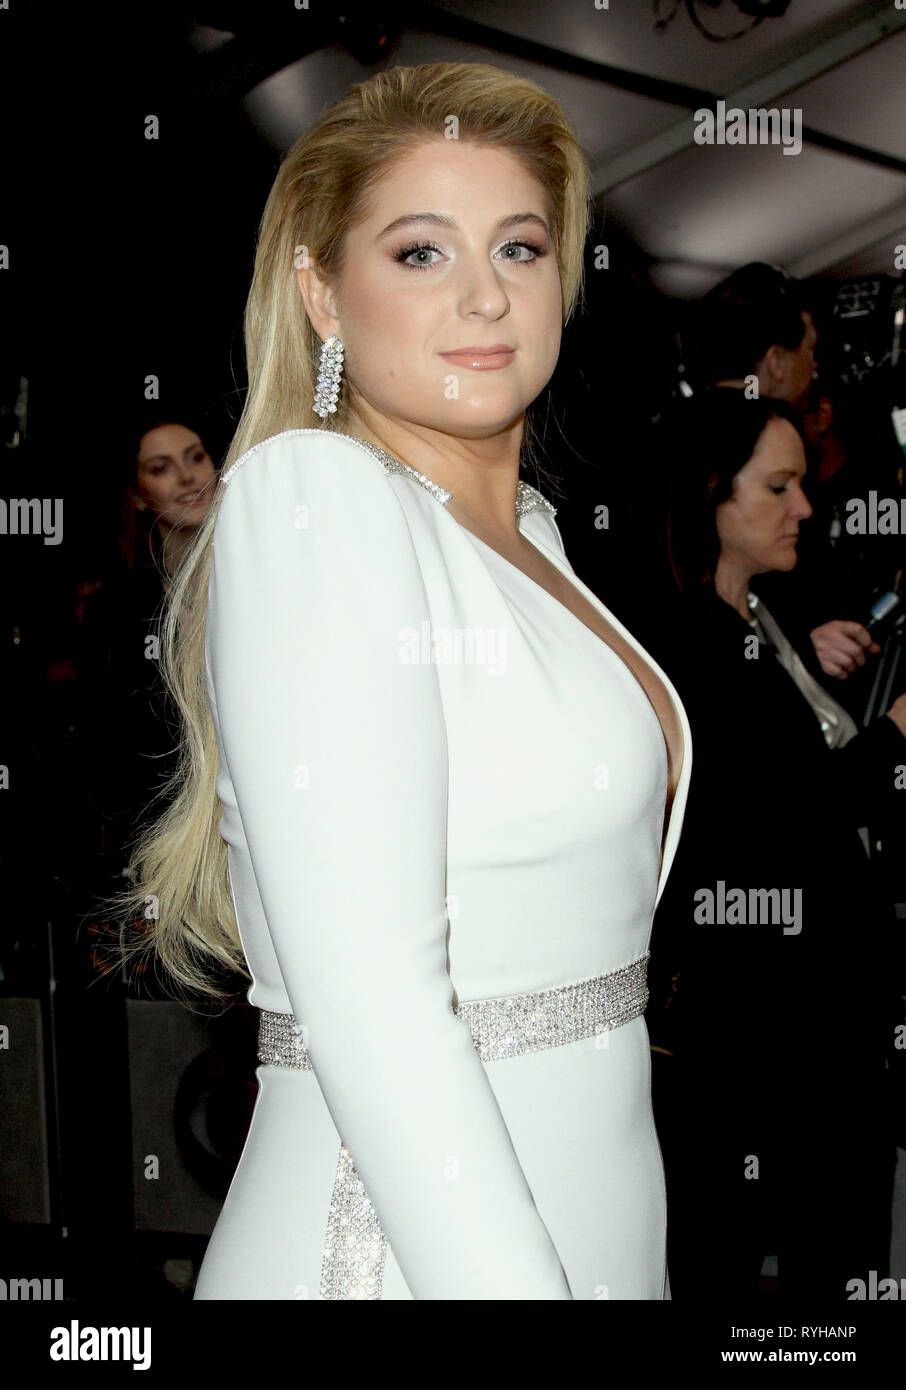 4327c4754e0 61st Annual Grammy Awards held at the Staples Center - Arrivals Featuring  Meghan  Trainor Where  Los Angeles